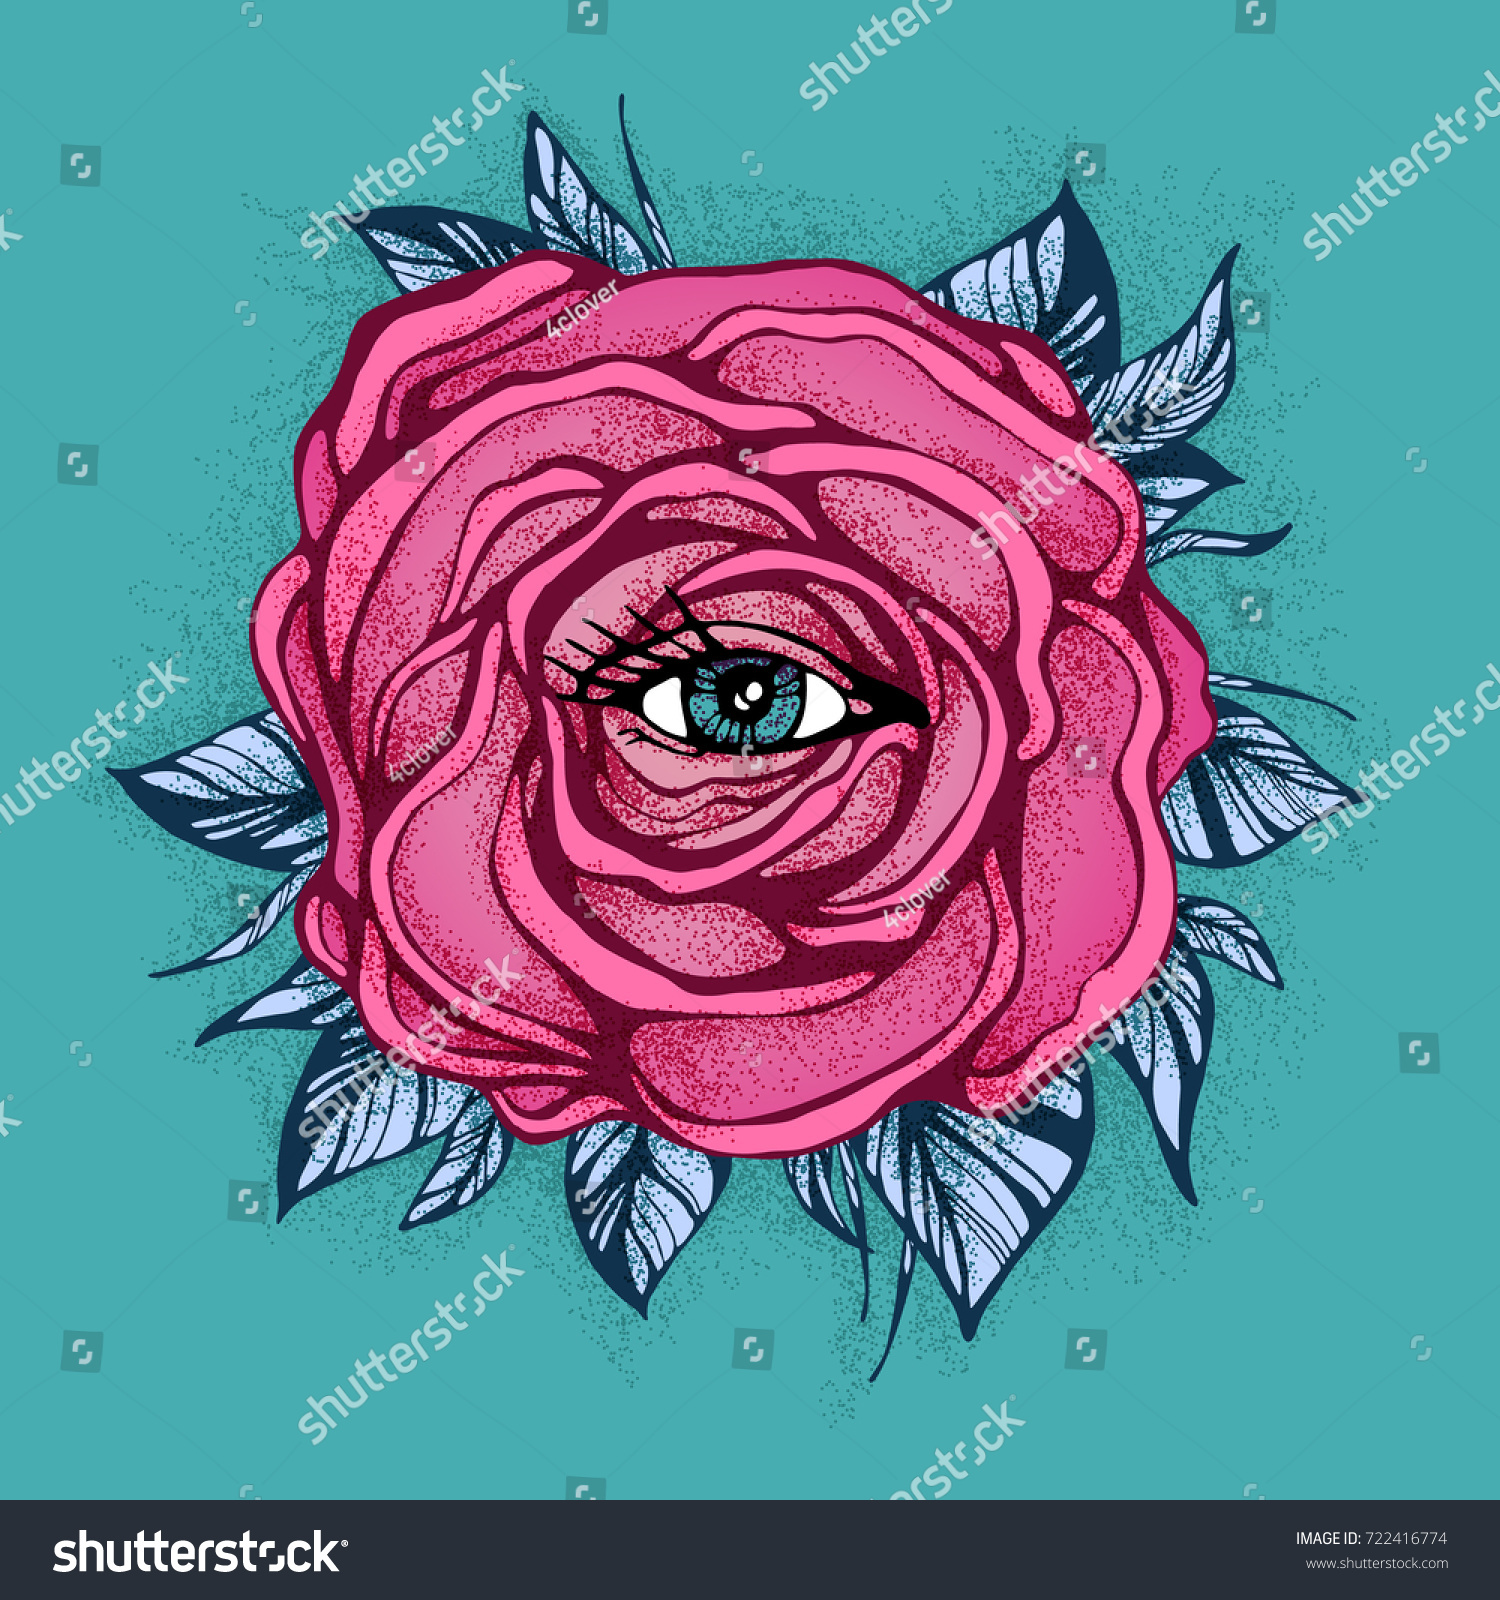 Pink Tattoo Rose Flower Eye On Stock Vector Royalty Free 722416774